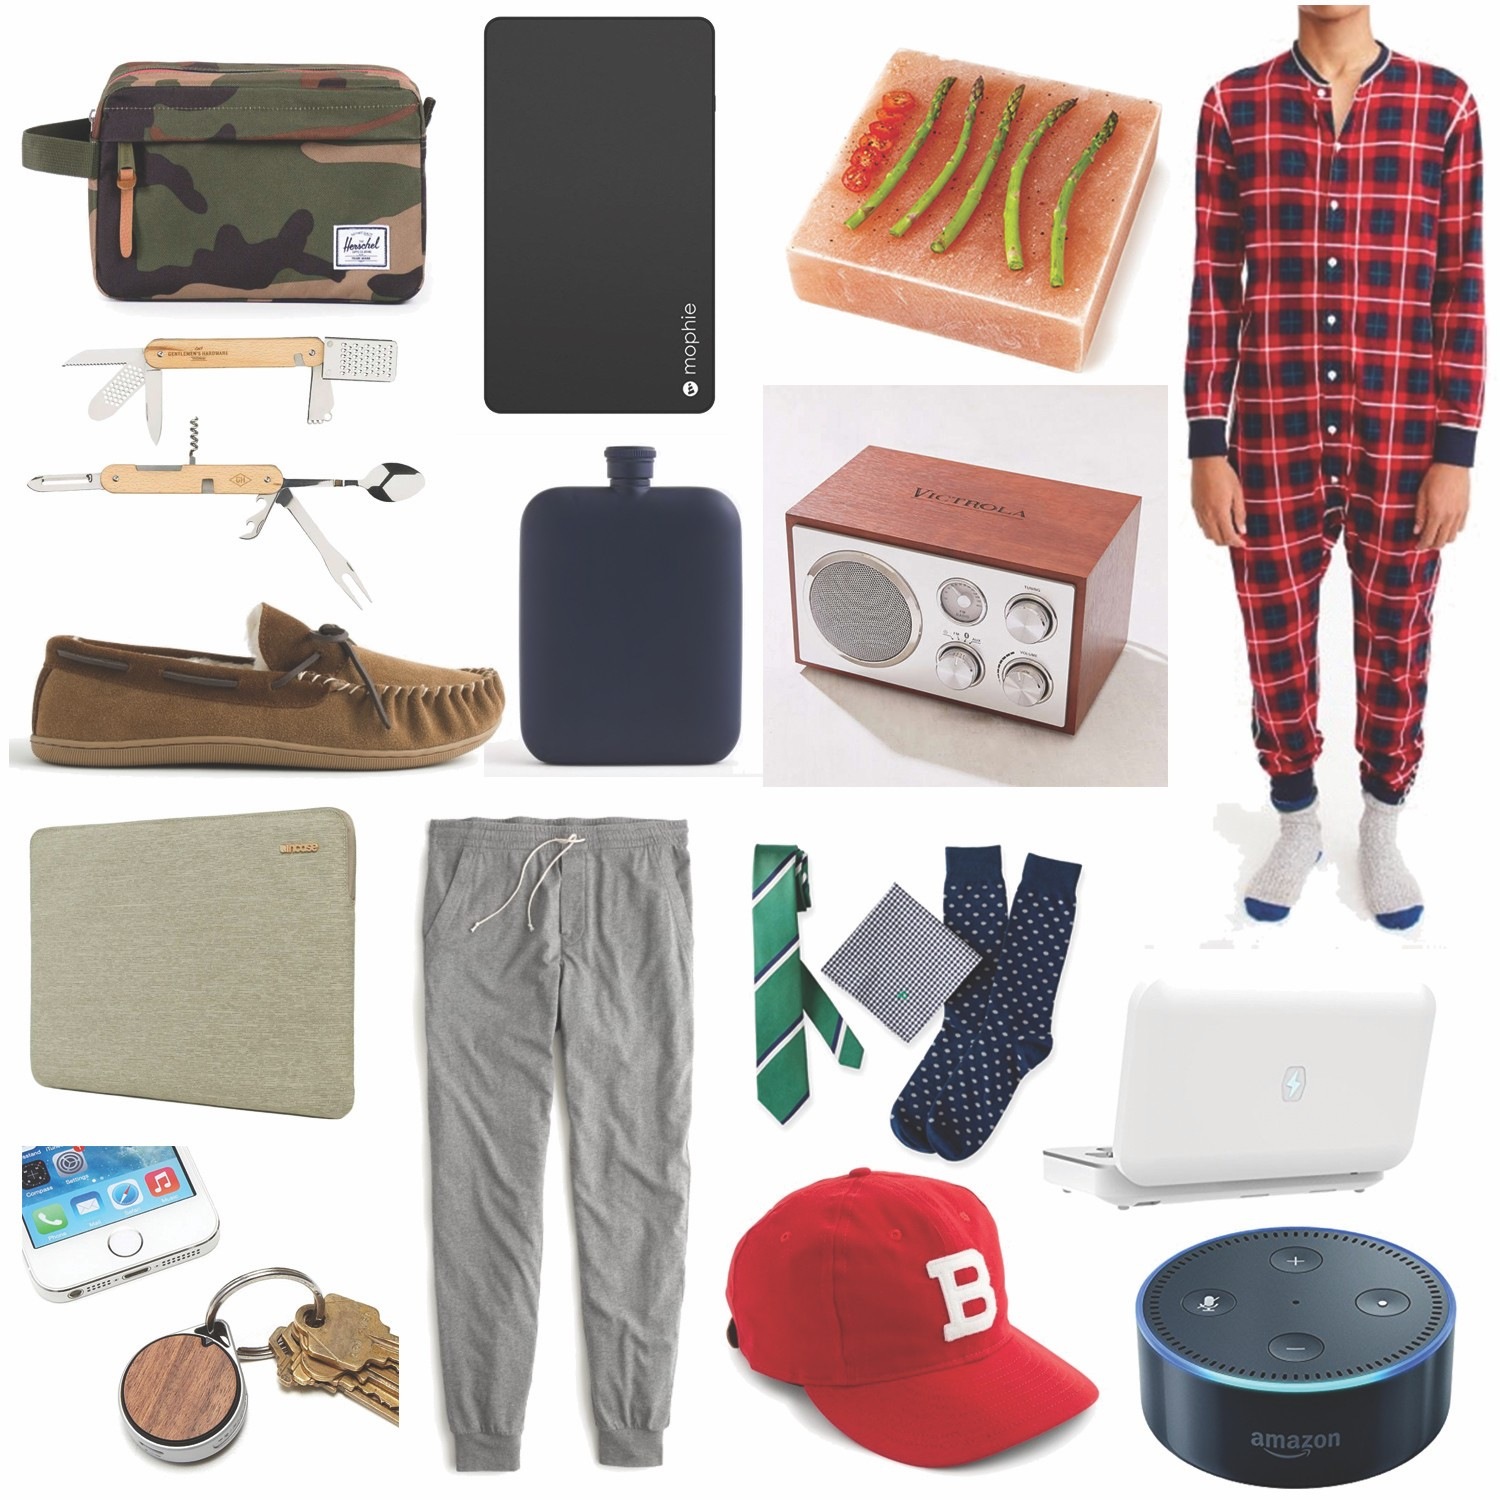 15 Best Christmas Gifts For Him Under $50 by Colorado style blogger Eat Pray Wear Love